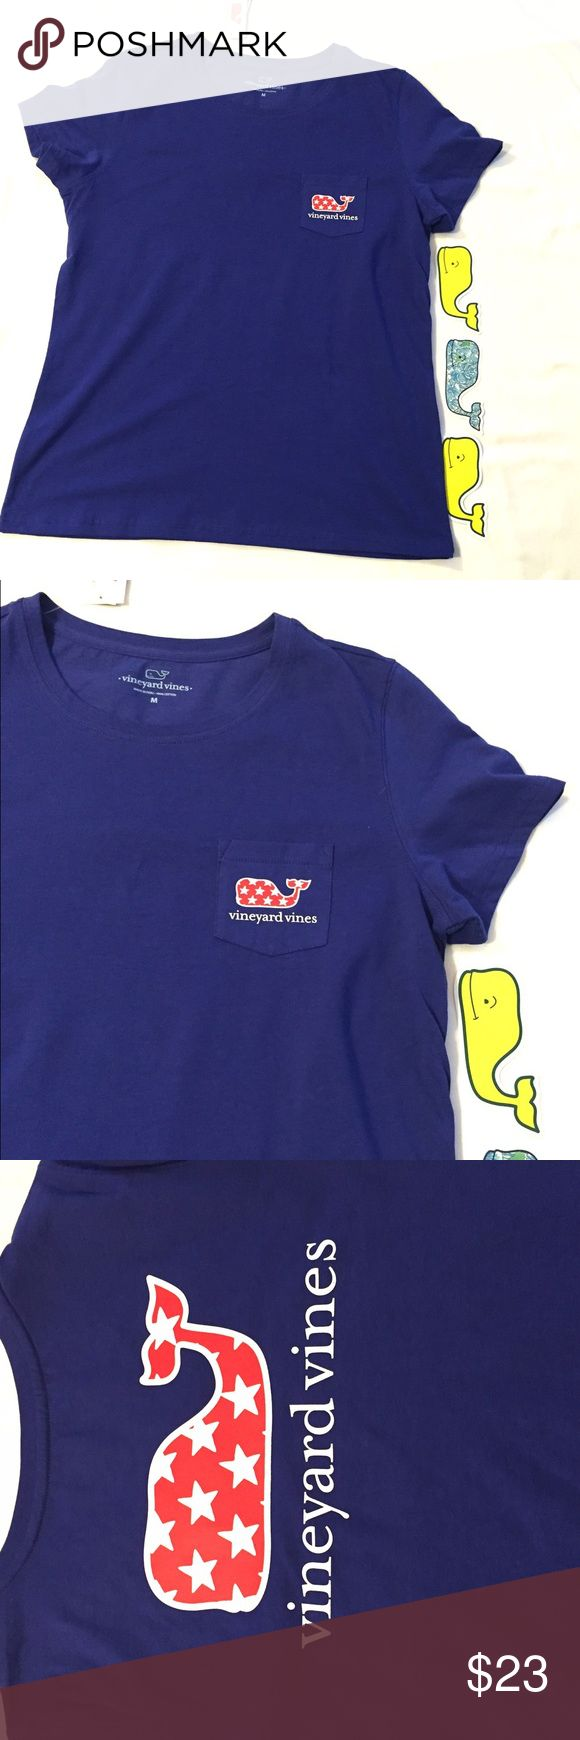 🆕 listing! Vineyard Vines Stars and Whale T shirt Summery Vineyard Vines short sleeve t shirt in Ocean Reef. This Amis a women's cut.  Size M.  Front pocked with a whale on the back.  This shirt is from the outlet store. Vineyard Vines Tops Tees - Short Sleeve